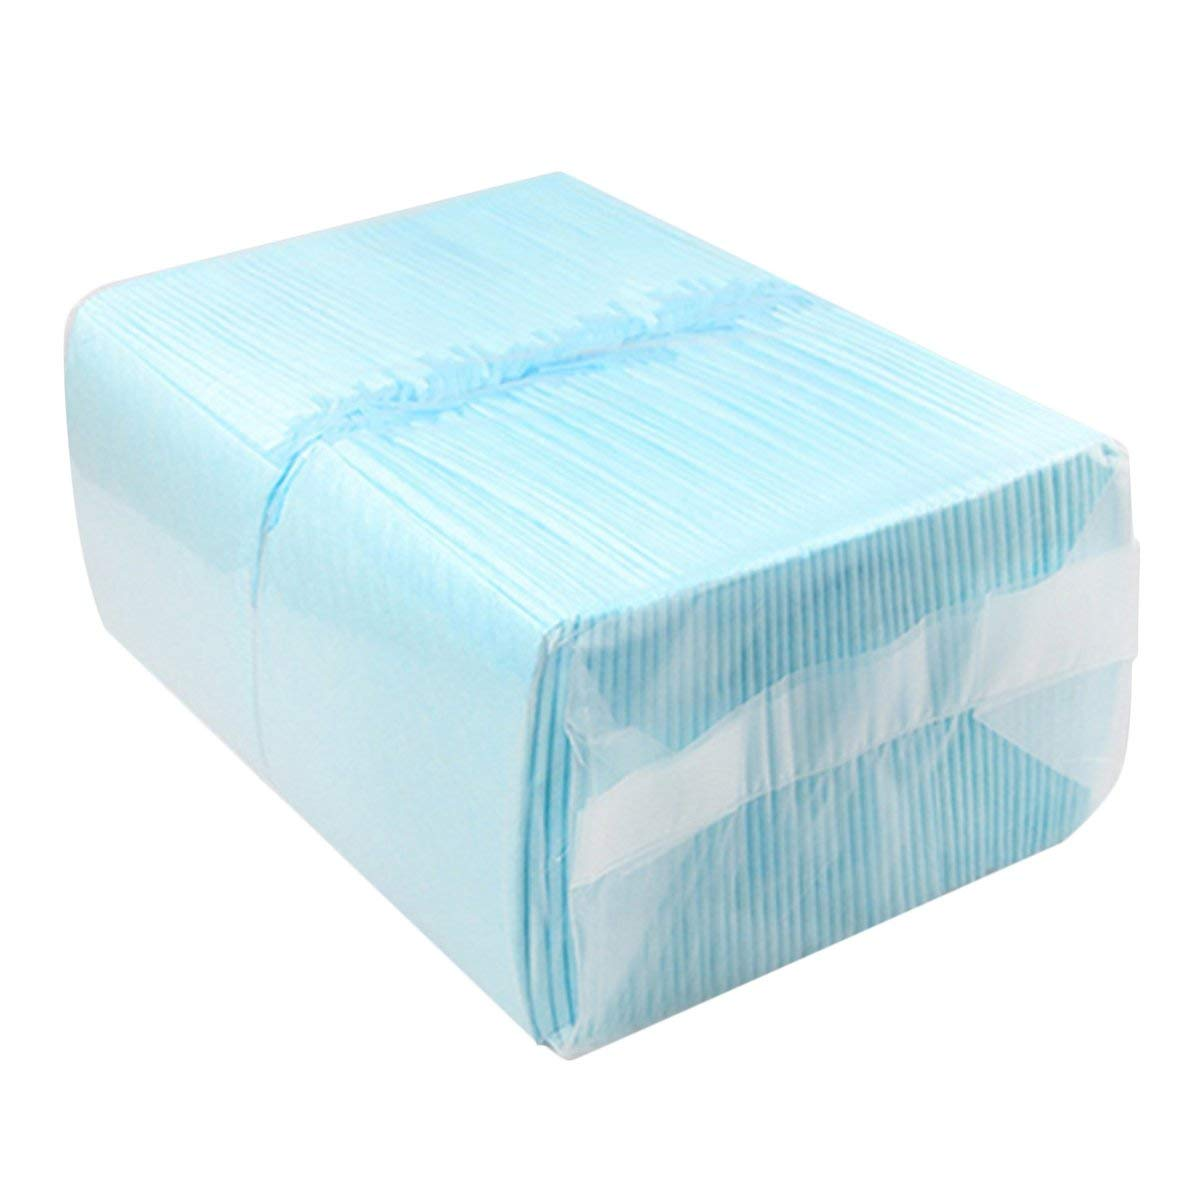 Super Absorbent Puppy Pet Indoor Toilet Pad Pet Training Pads Disposable Diaper Pet Pee Necessary Keep House Clean